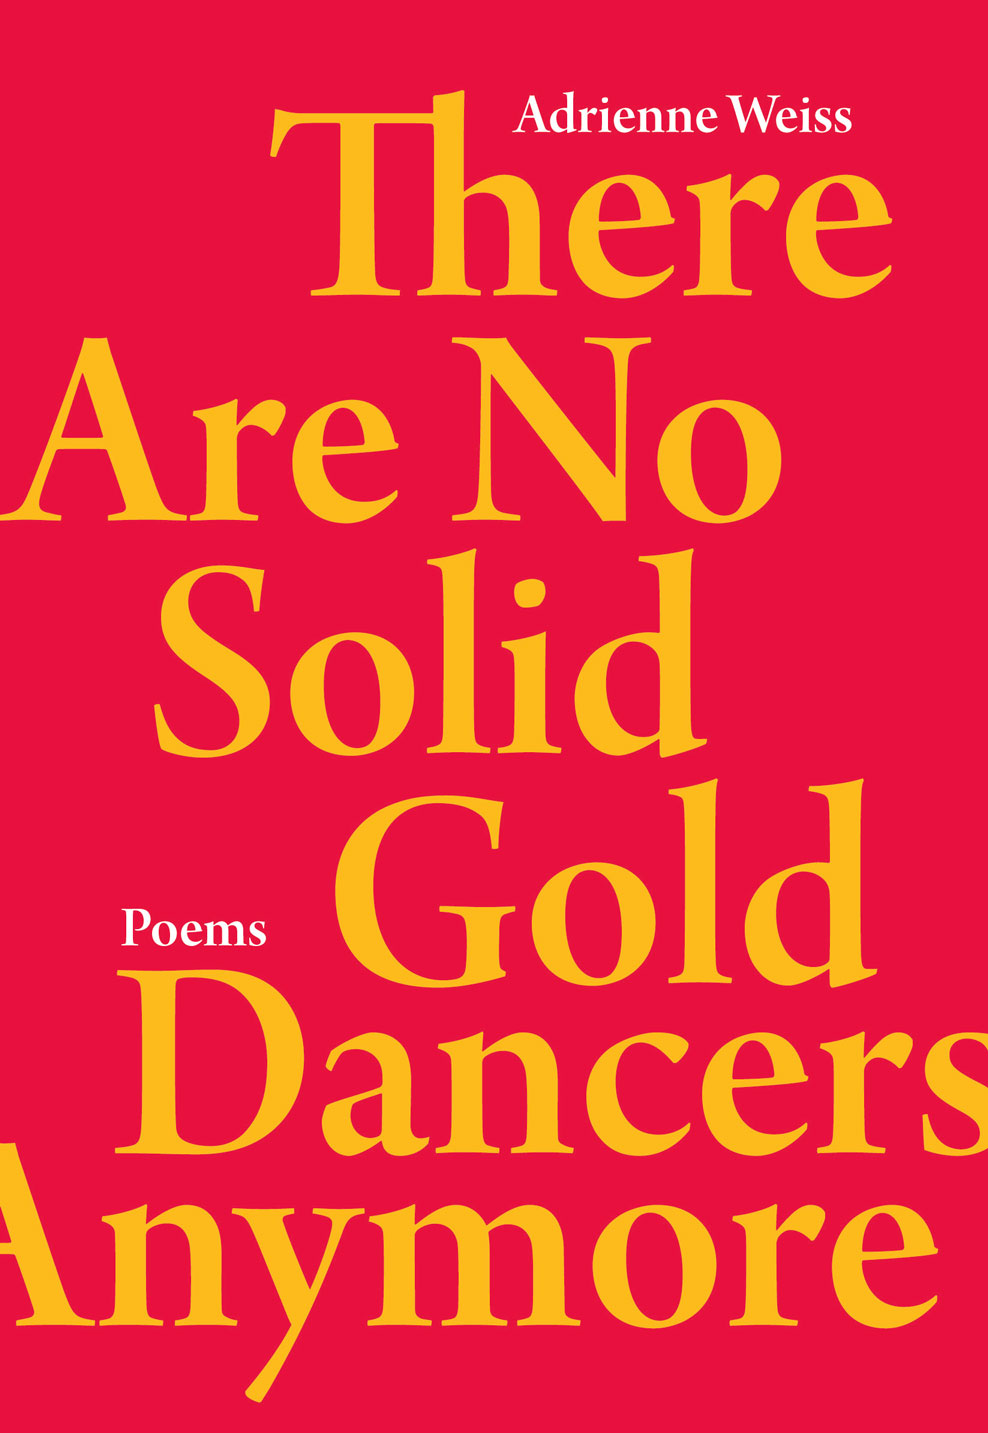 There Are No Solid Gold Dancers Anymore